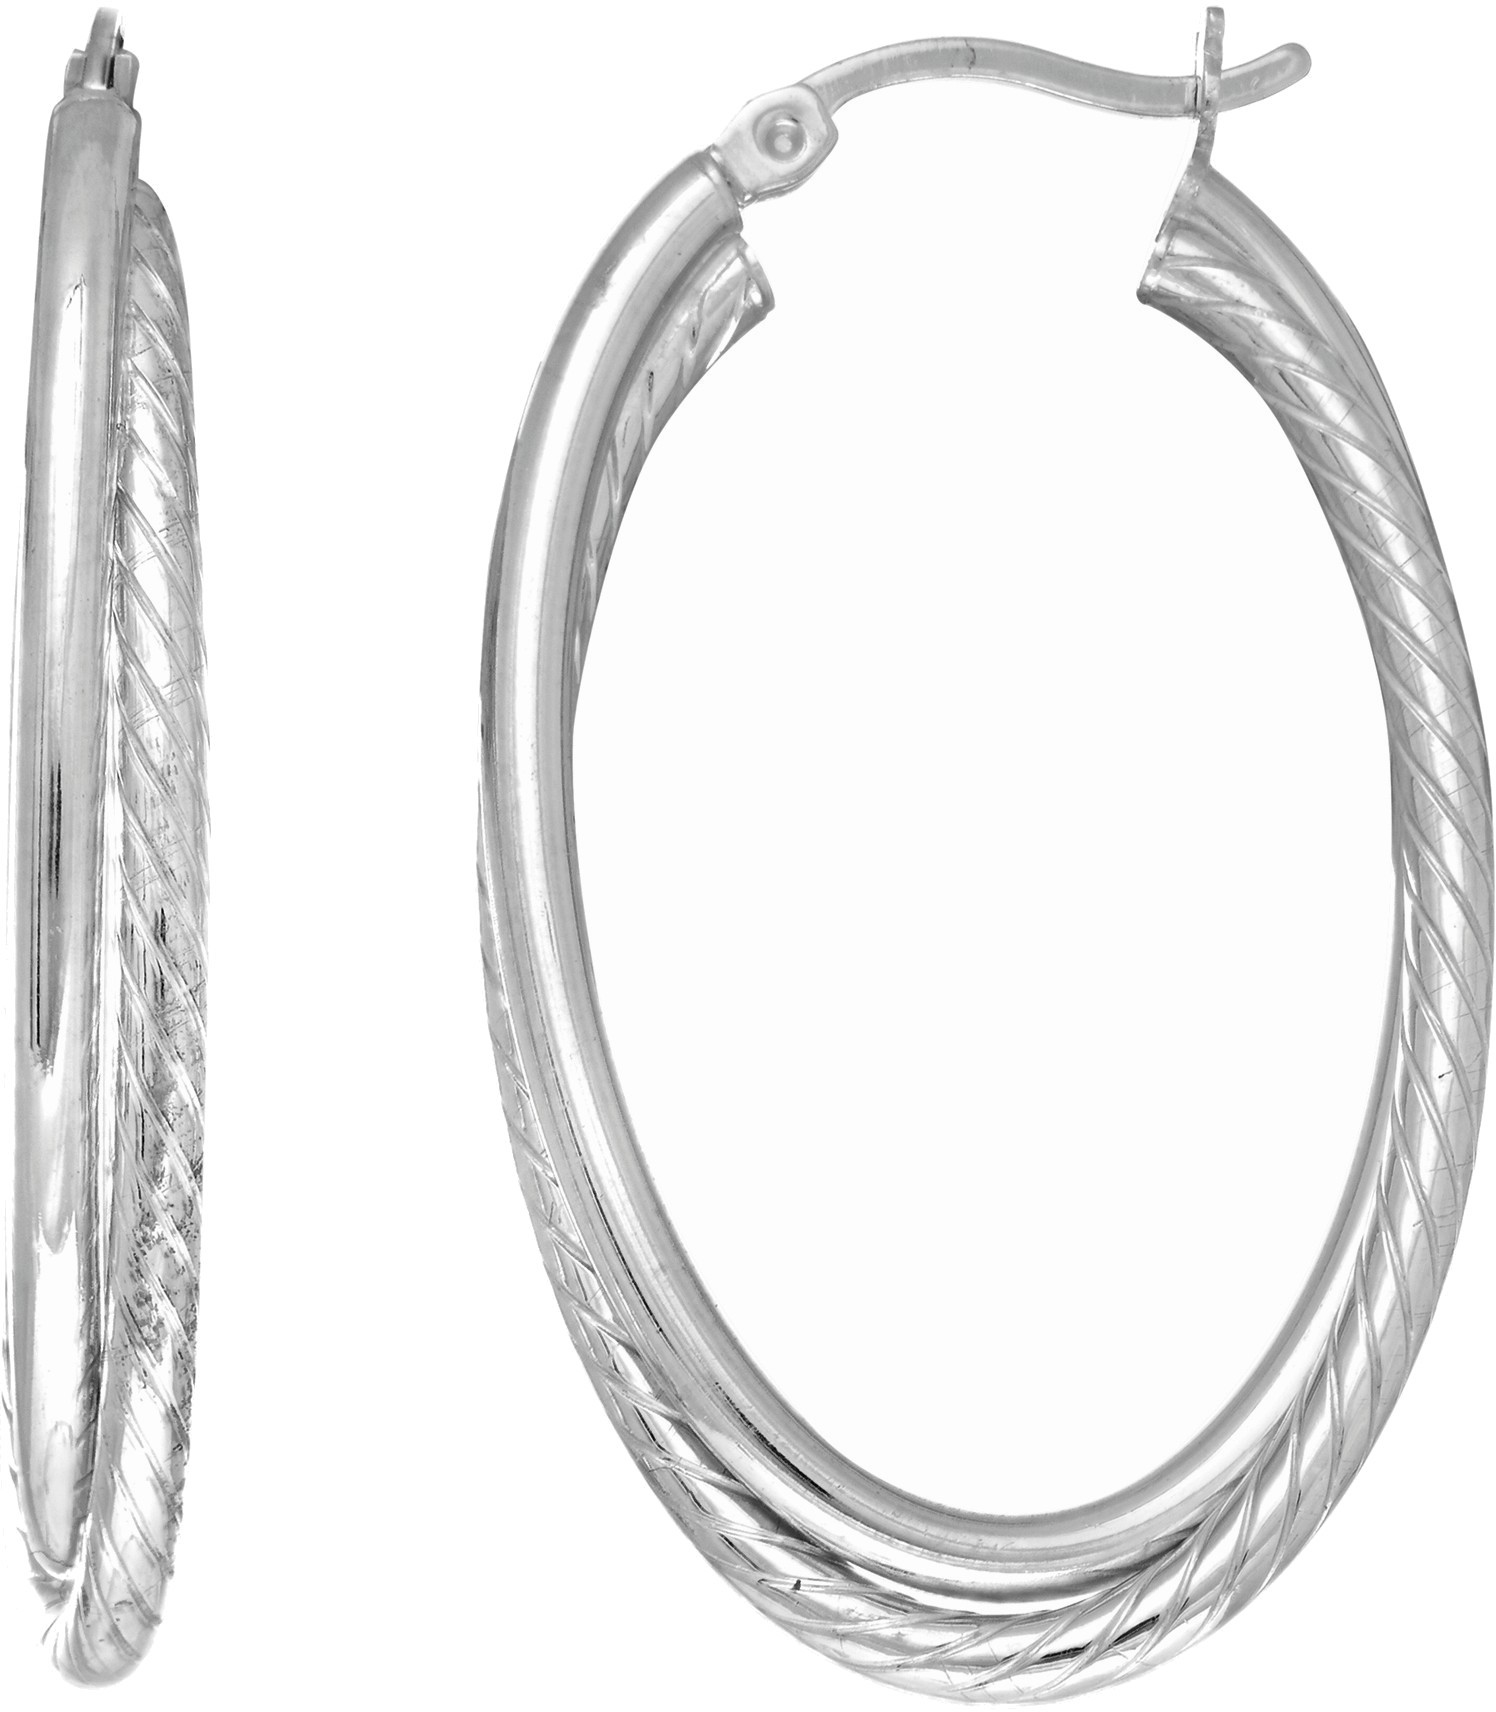 Silver Rhodium Plated Tube Hoop Earrings (BTAGE1772)